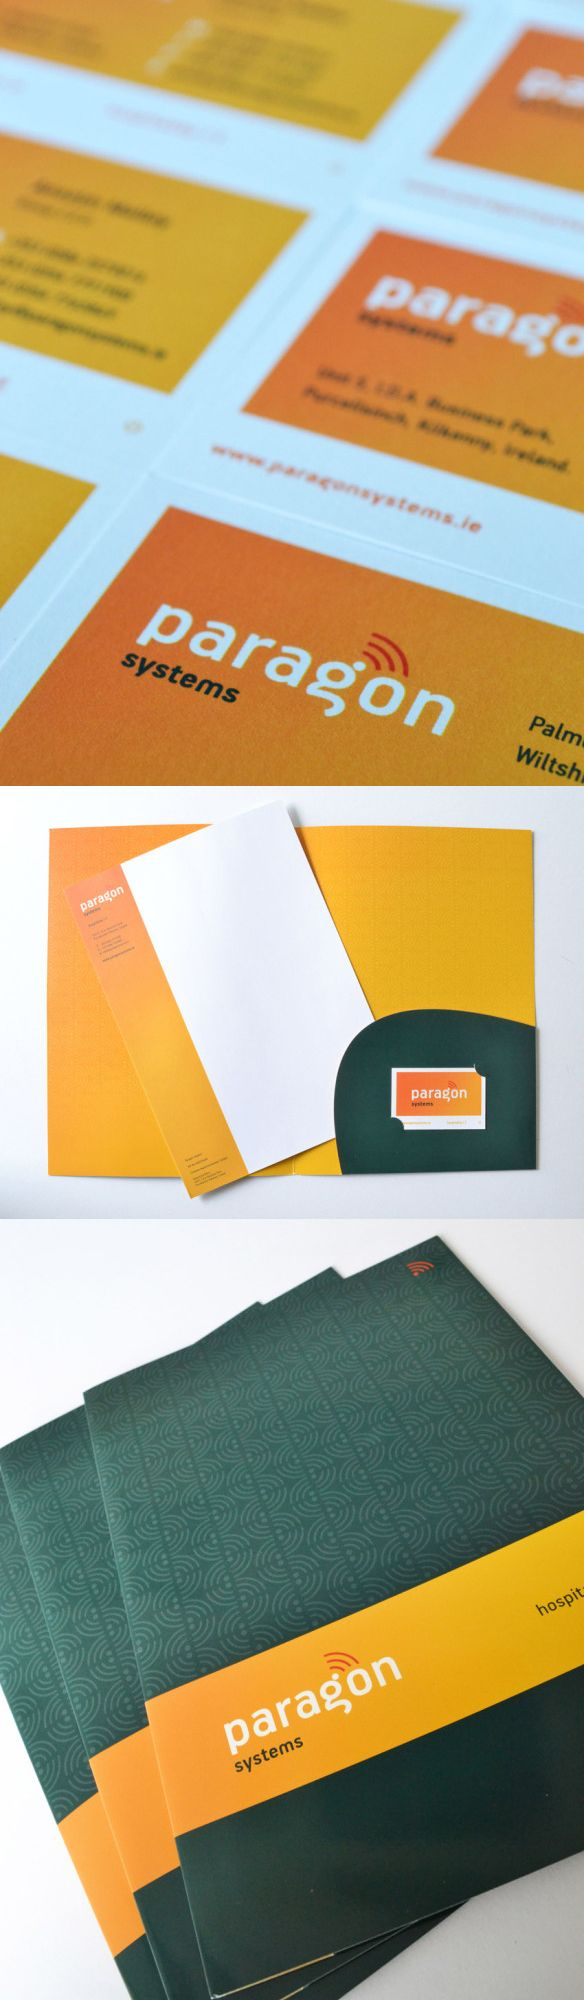 Paragon Systems provide IT solutions for the Hospitality Sector within Ireland and the UK. This meant duplicate stationery, catering for both offices. www.akgraphic.ie